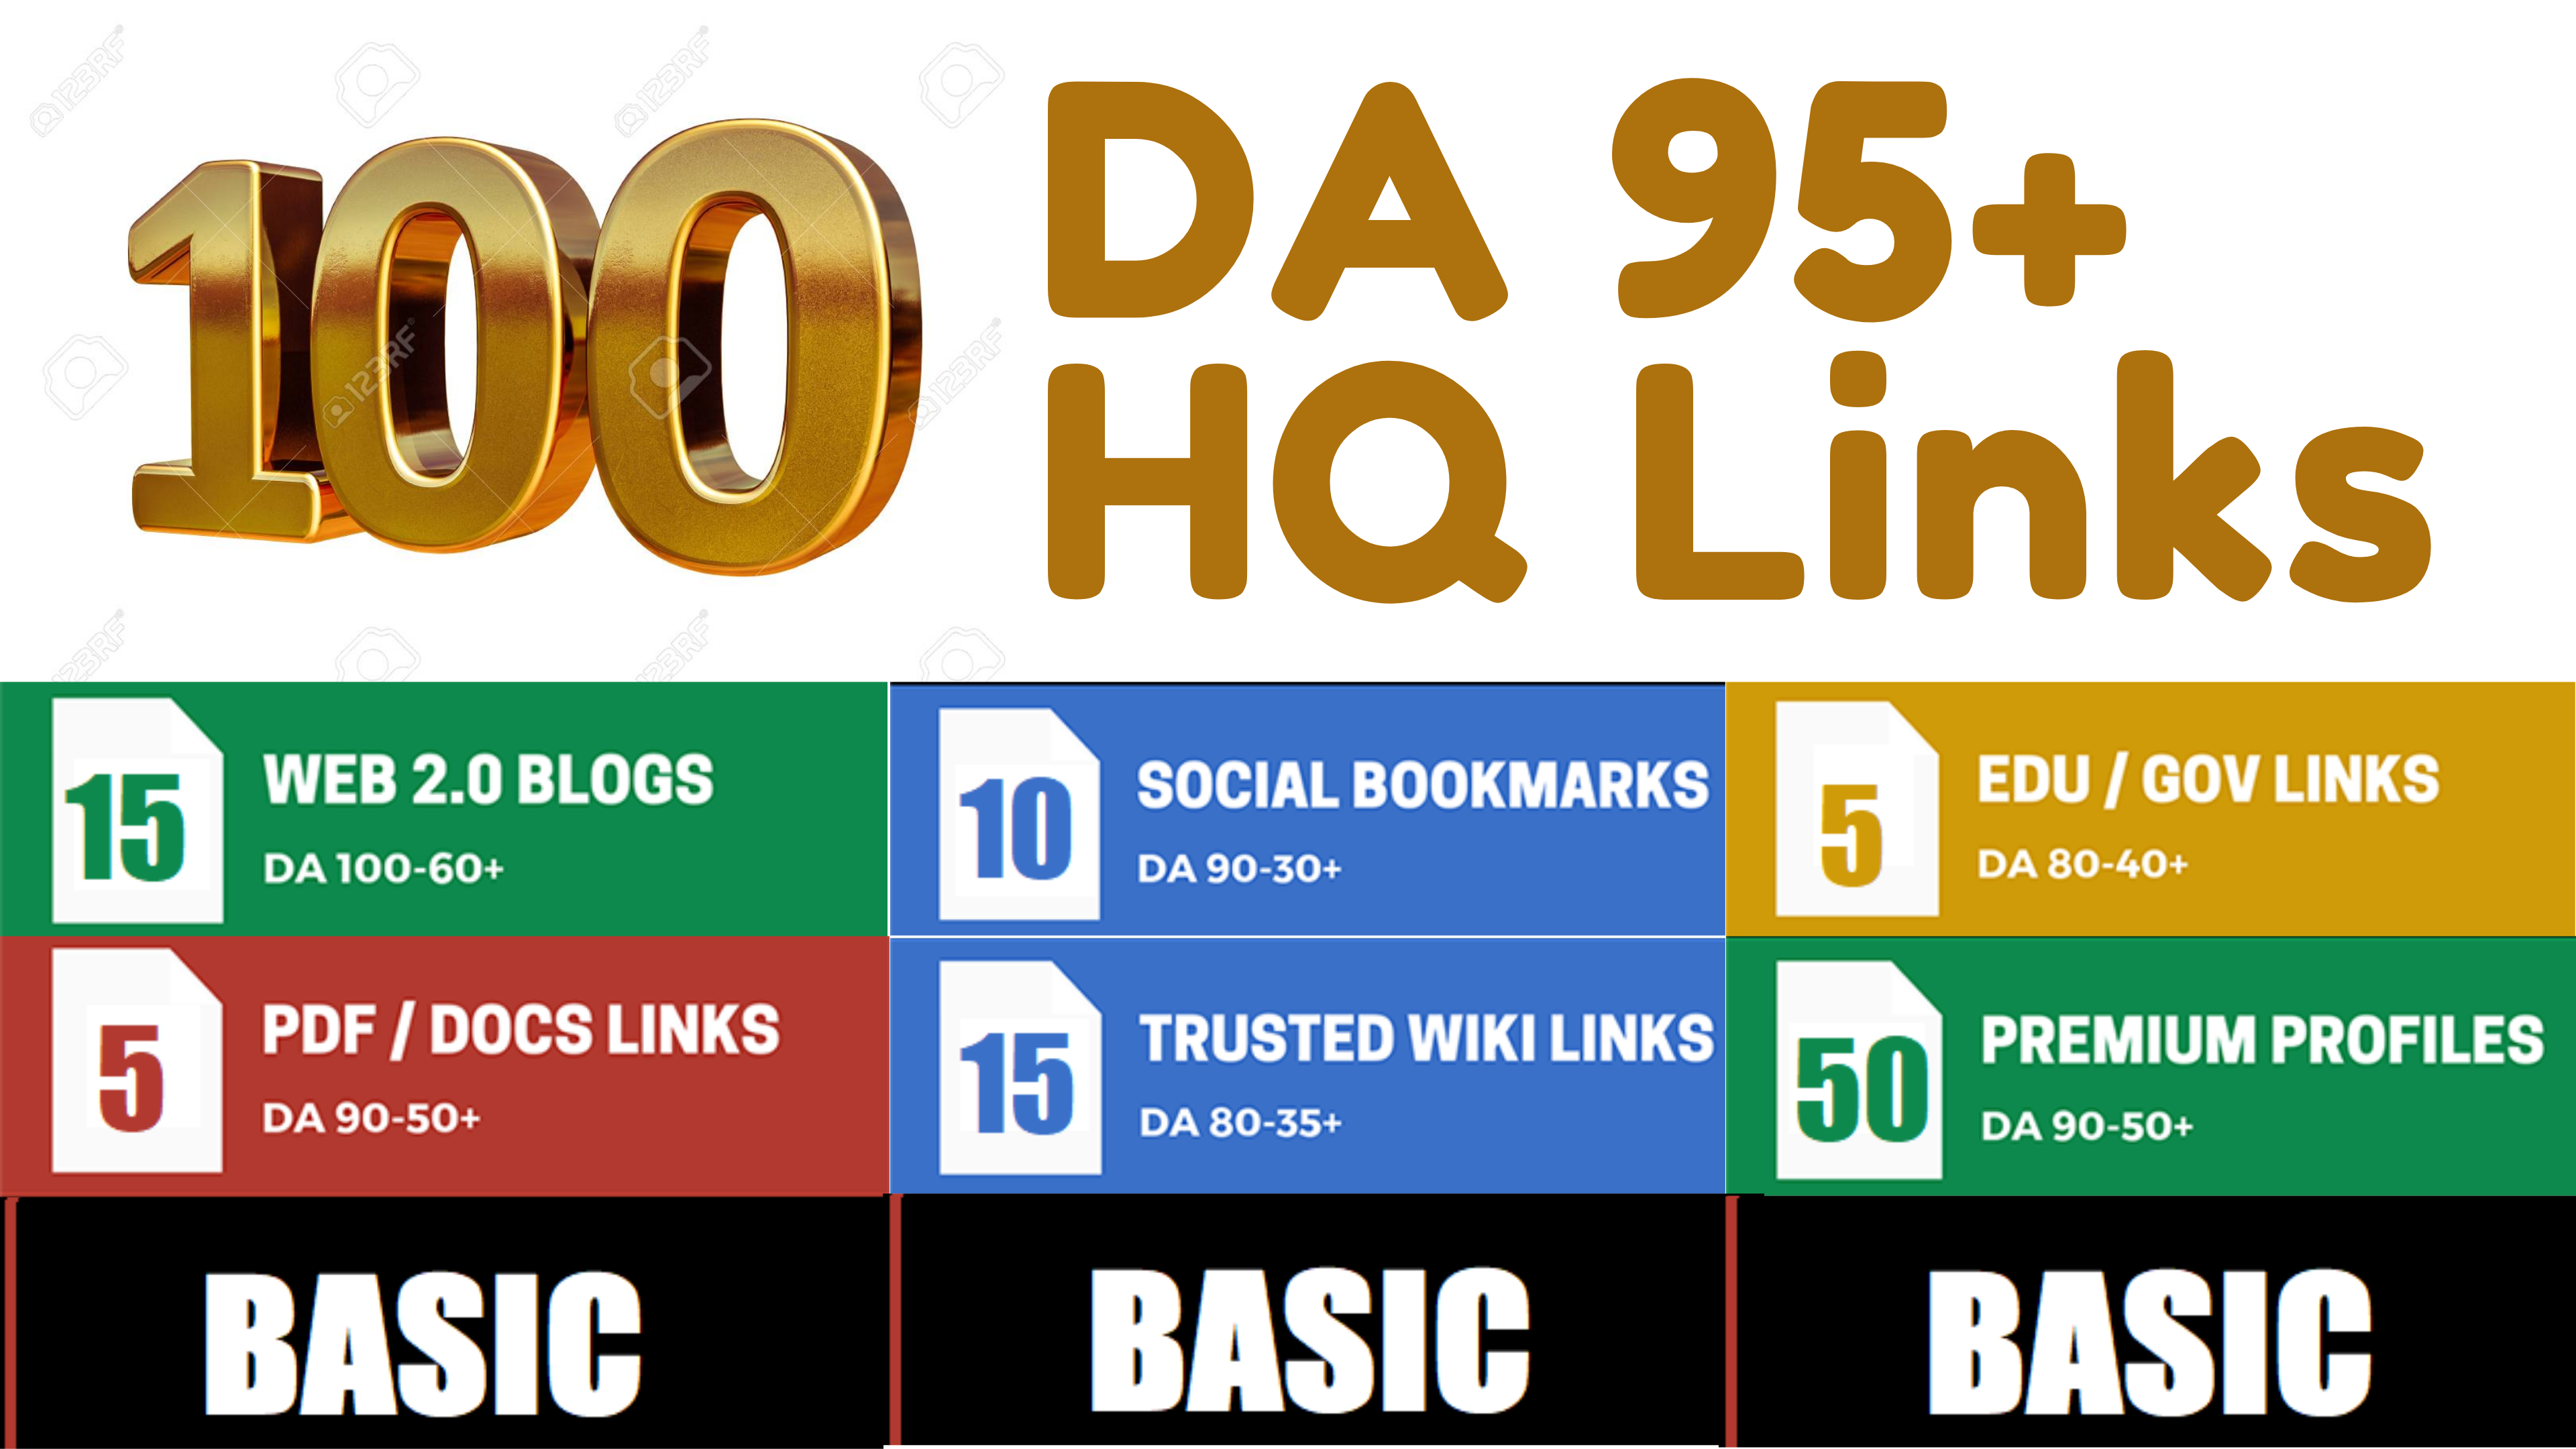 I will 100+ High DA 90+ HQ Links to RANK your website by boosting your web authority